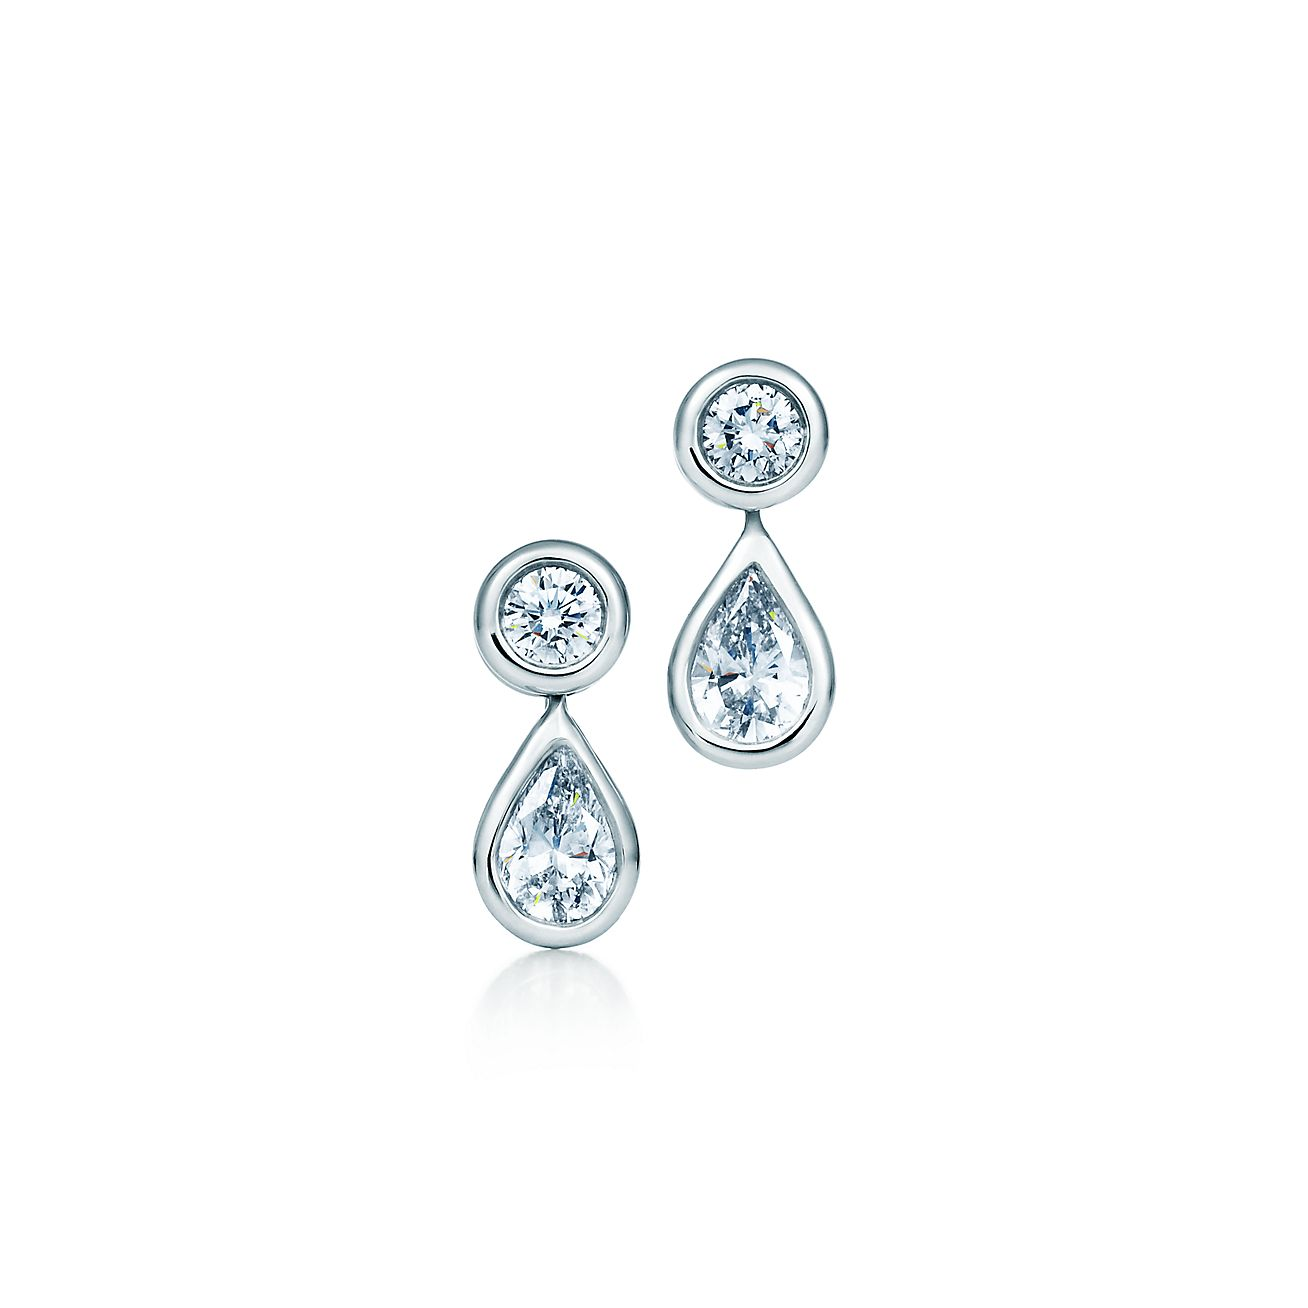 diamond earrings id fmt jewellery co solitaire platinum fit ed m in tiffany wid hei constrain jewelry